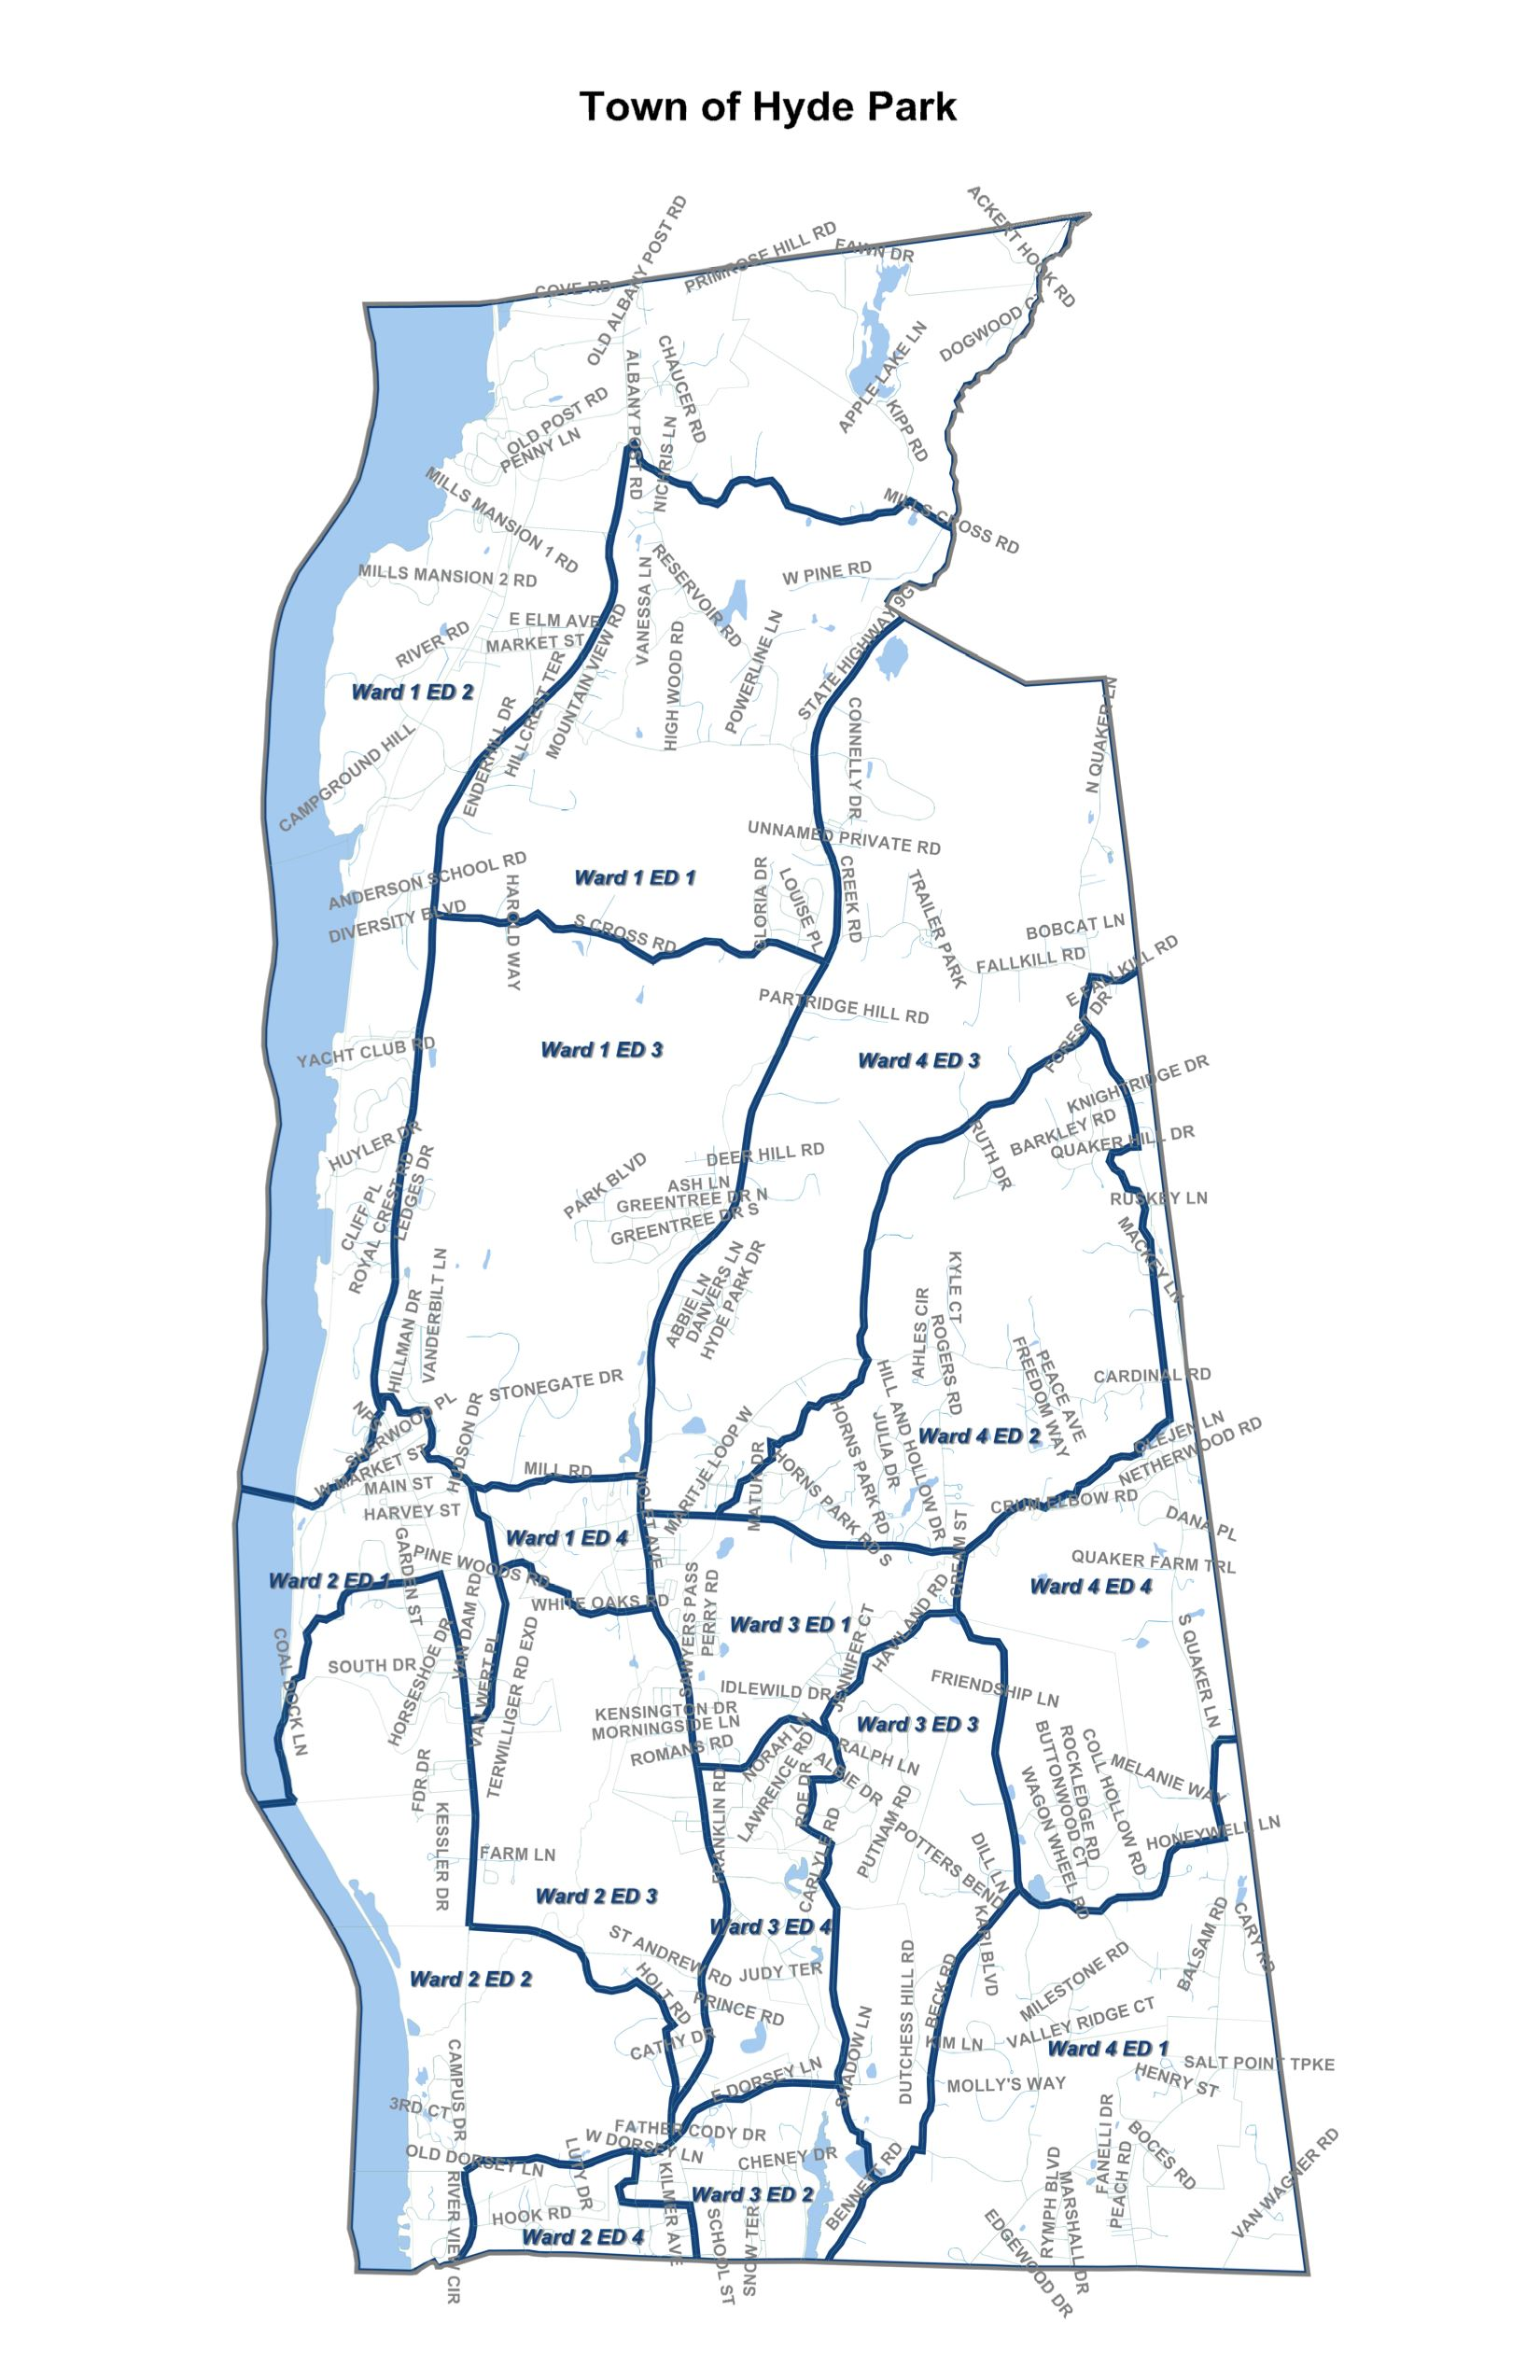 Town of Hyde Park Ward Map